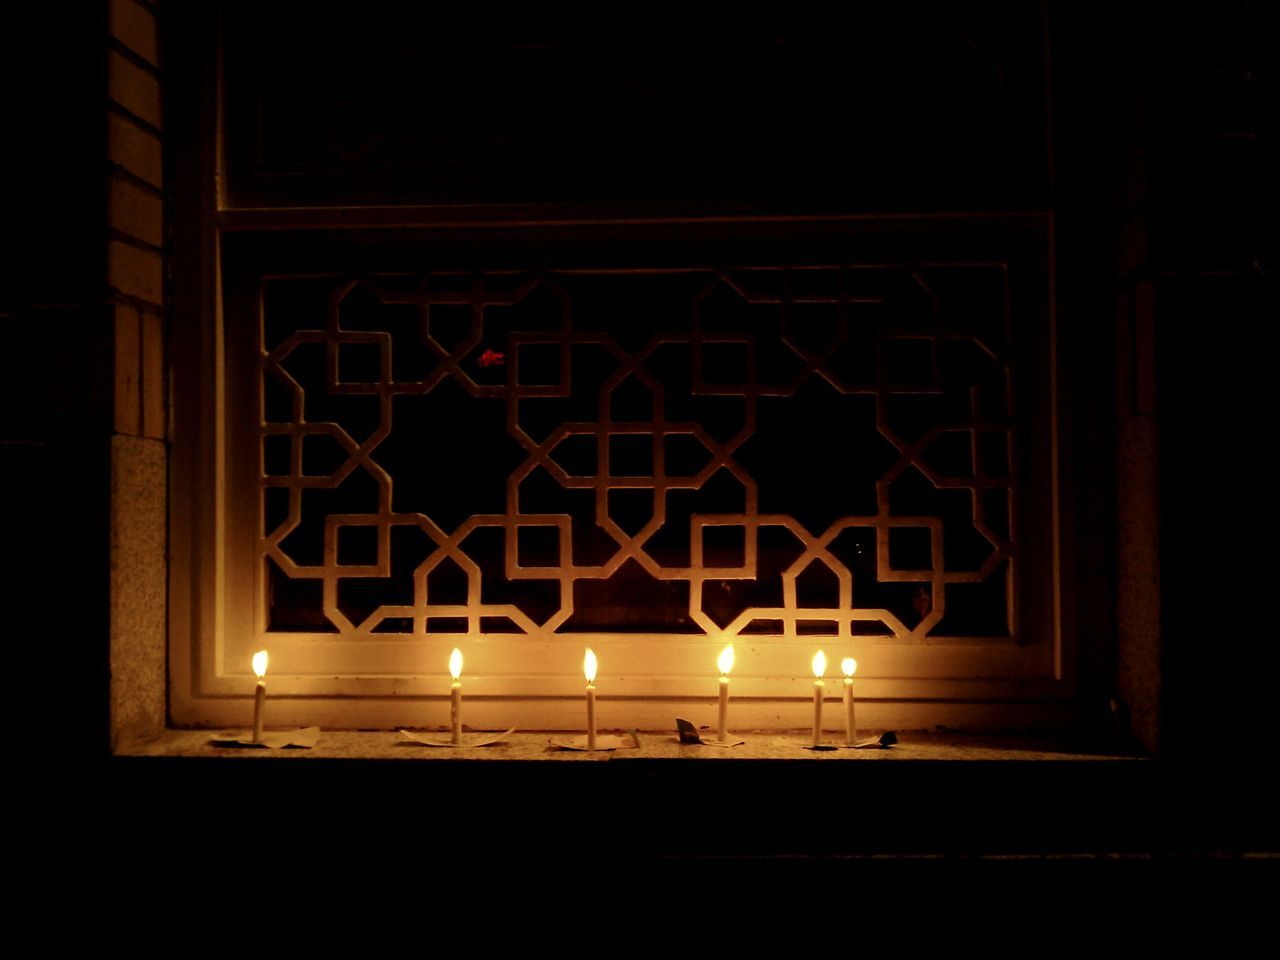 Lit candles on window in mosque at night